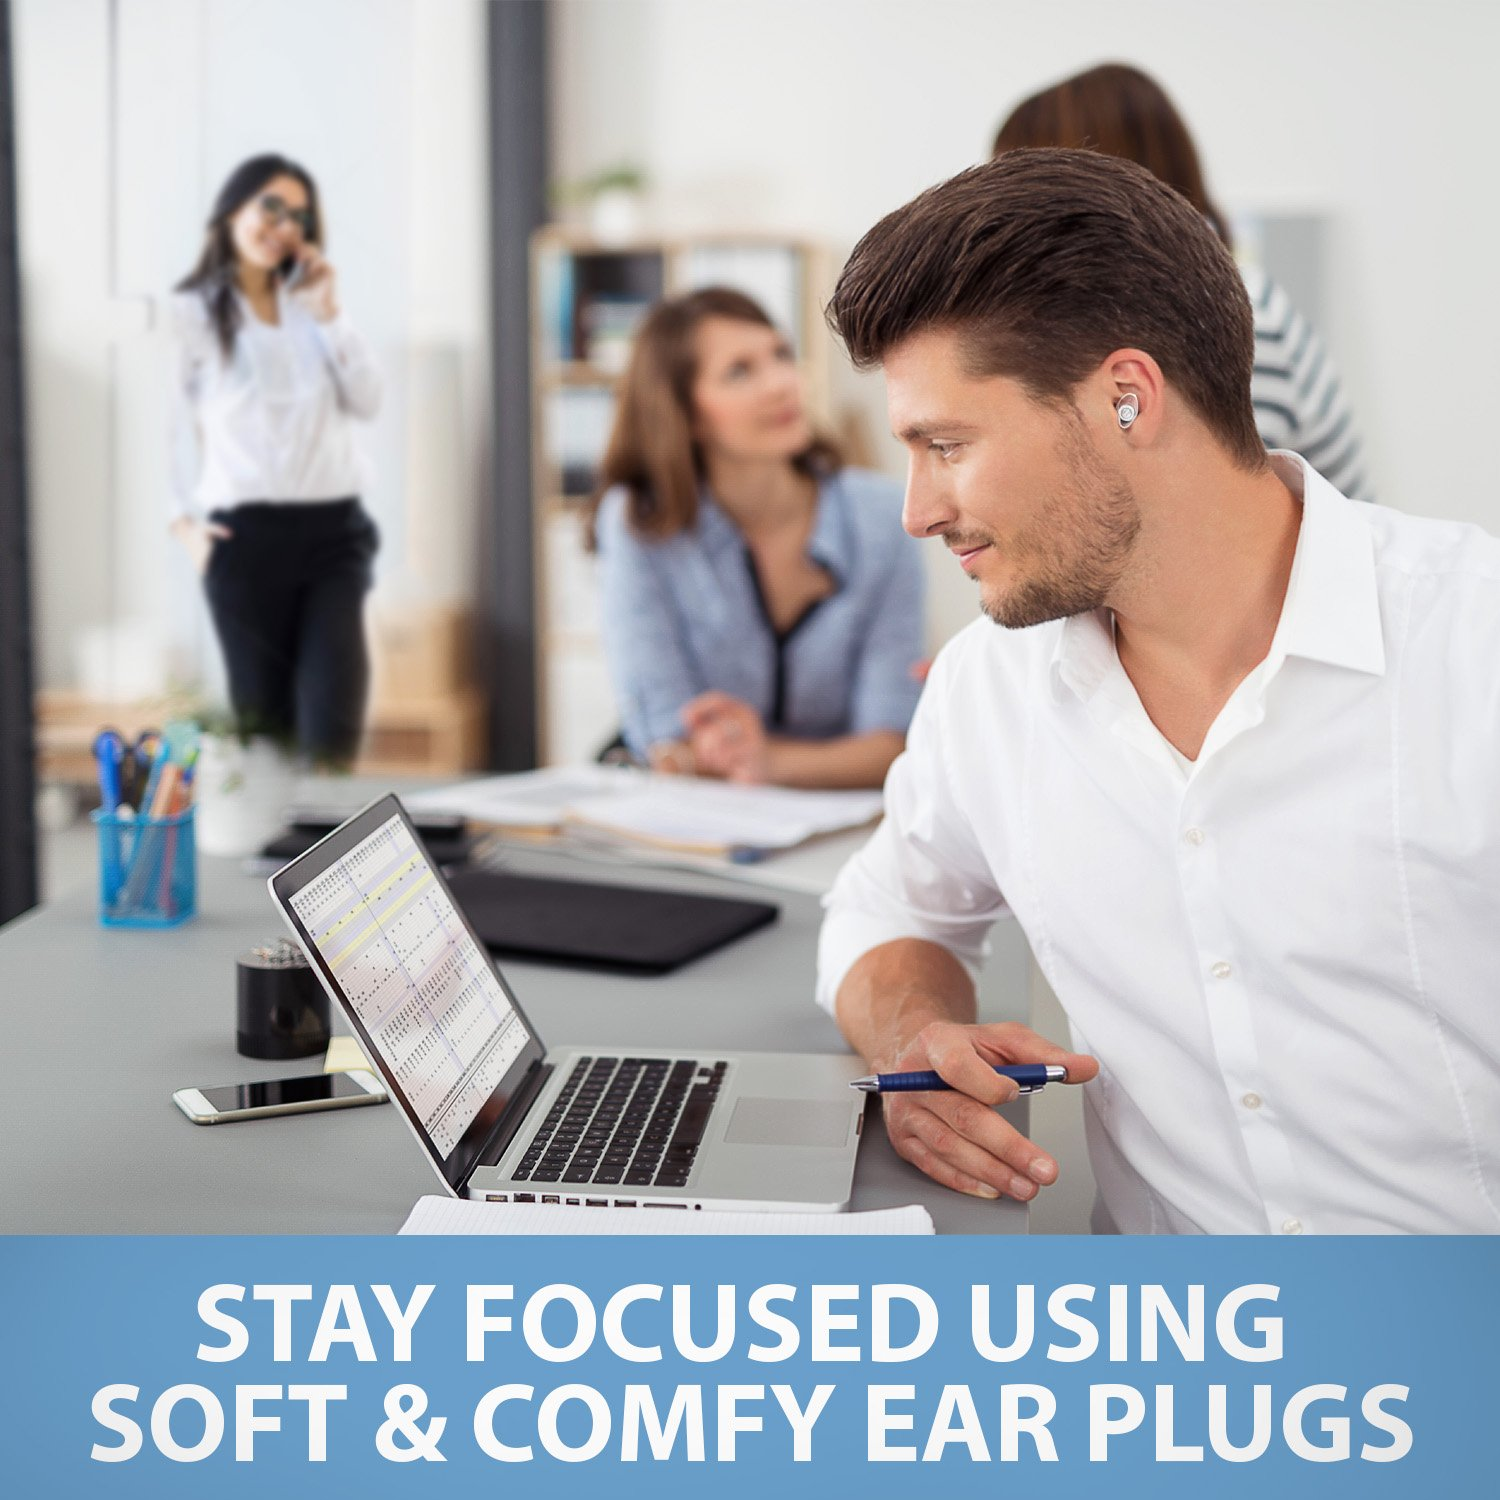 Sound Reducing Professional Ear Plugs - Most Effective Noise Reduction Ear Plugs for Concerts, Work, Sleep and Motorcycle Ear Protection - Soft and Comfortable Reusable Ear Plugs - Earplugs Sleep by Inbound Vibes (Image #6)